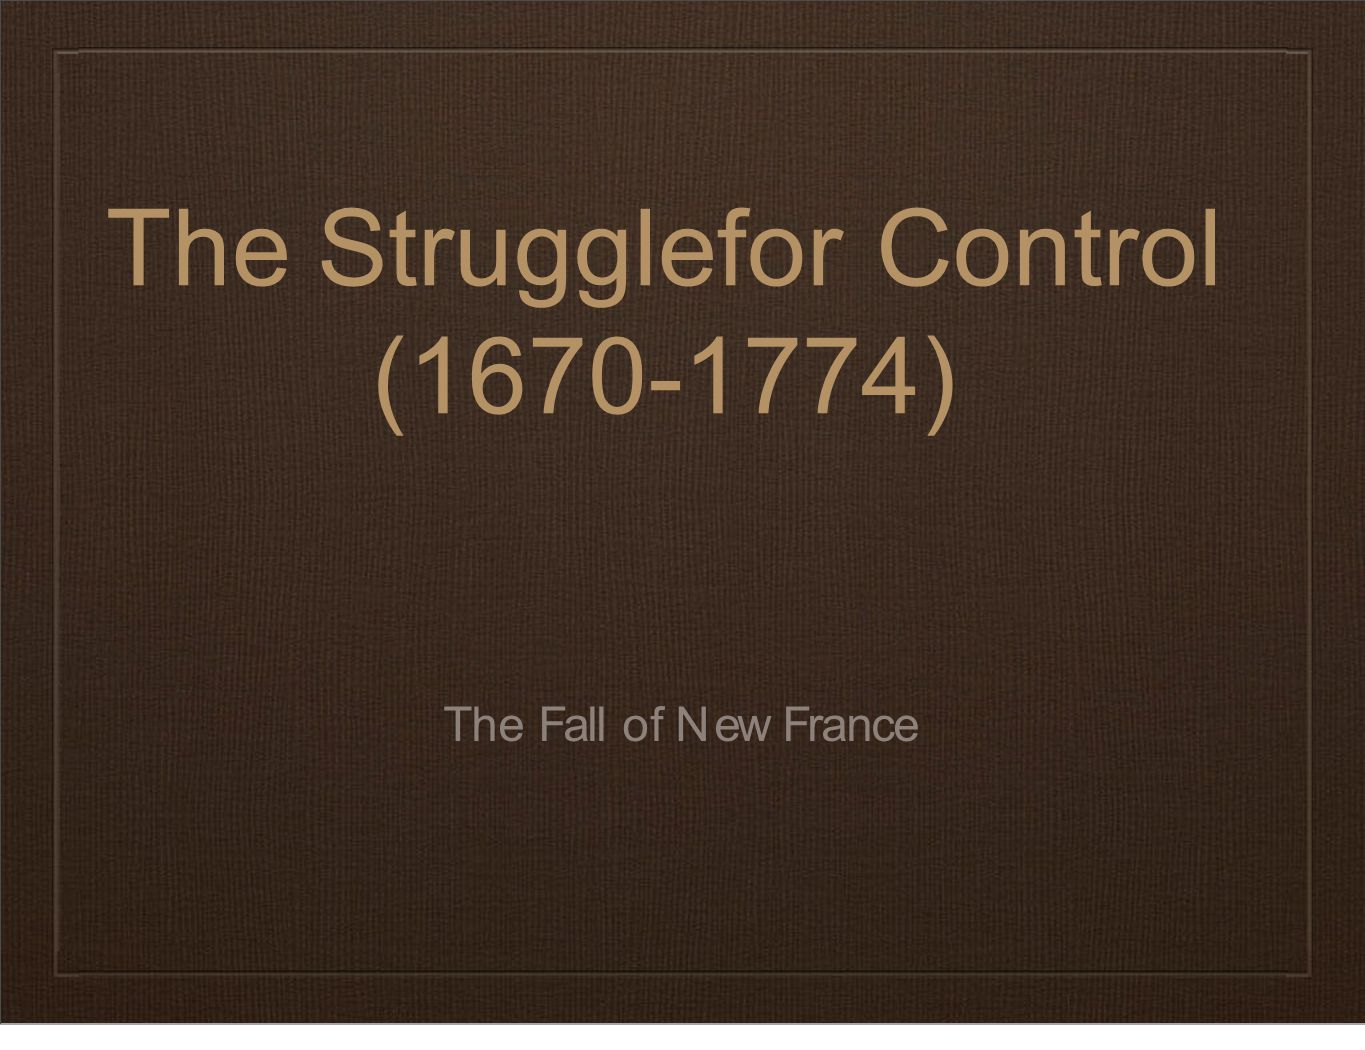 TheStruggleforControl (1670-1774) The Fall of New France